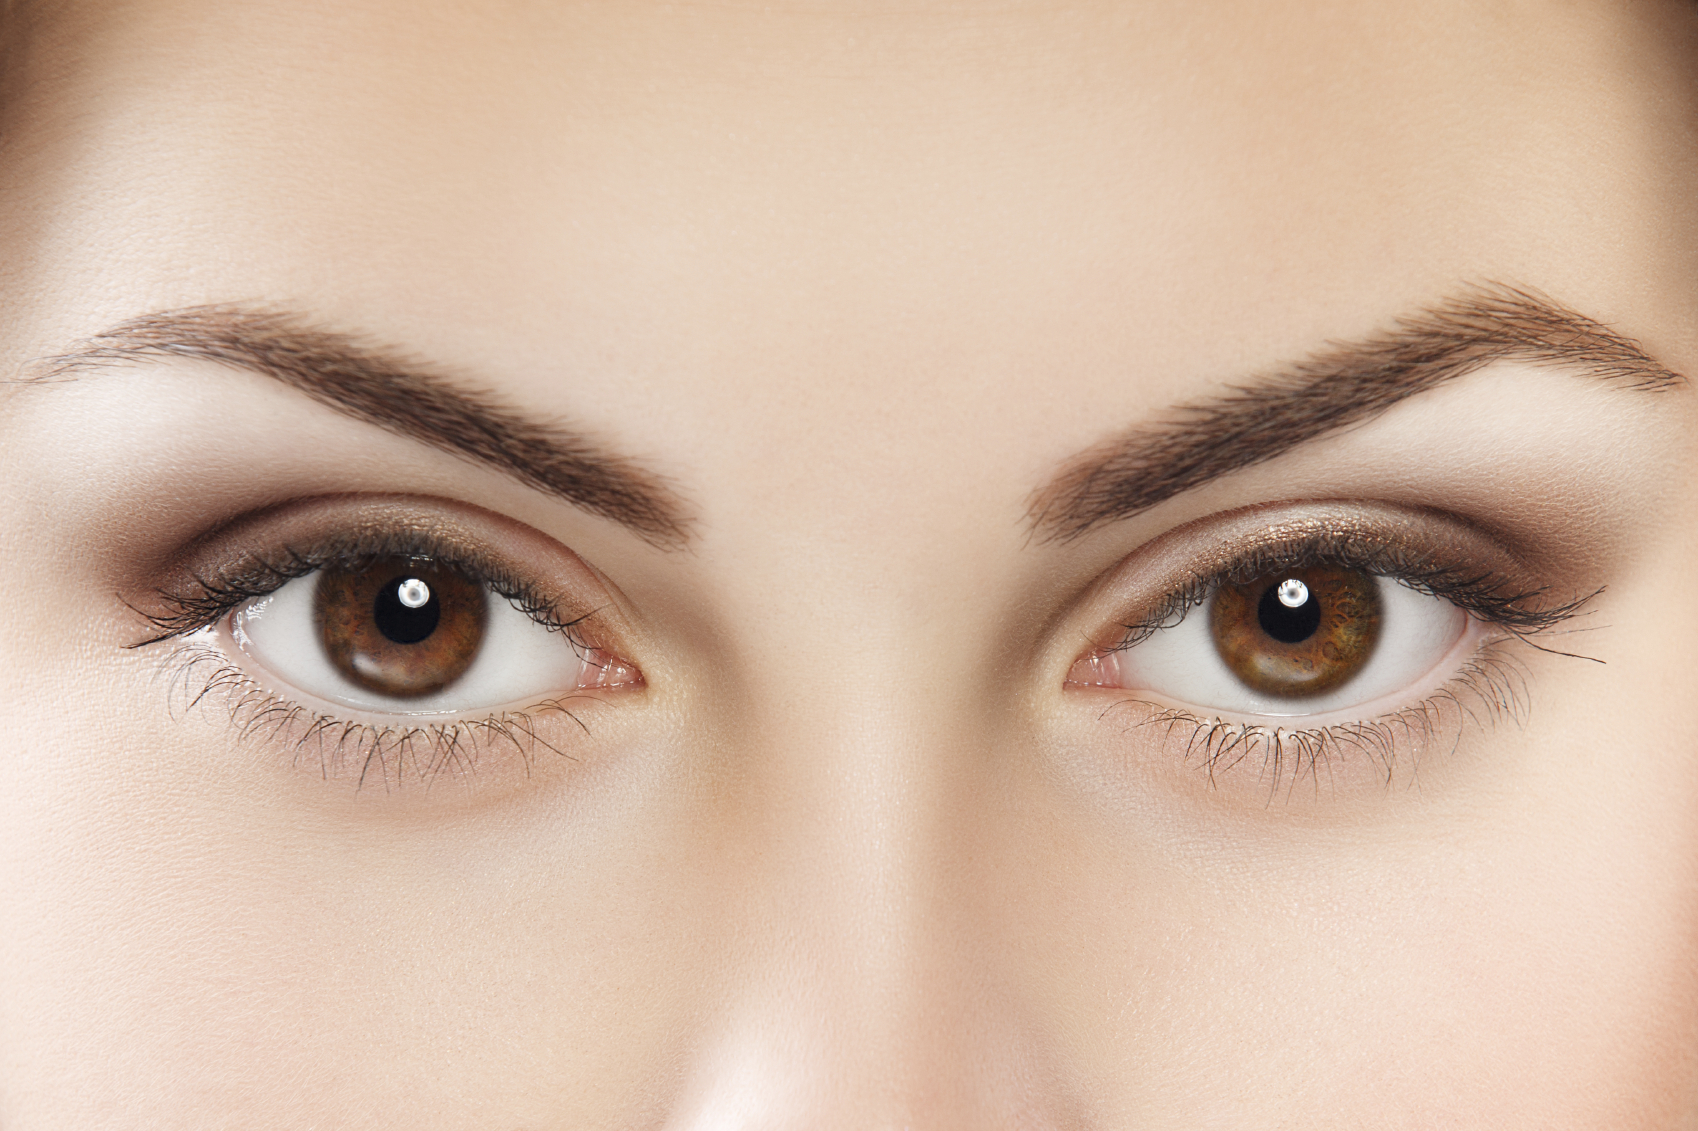 Hyperhomocysteinemia and the eyes